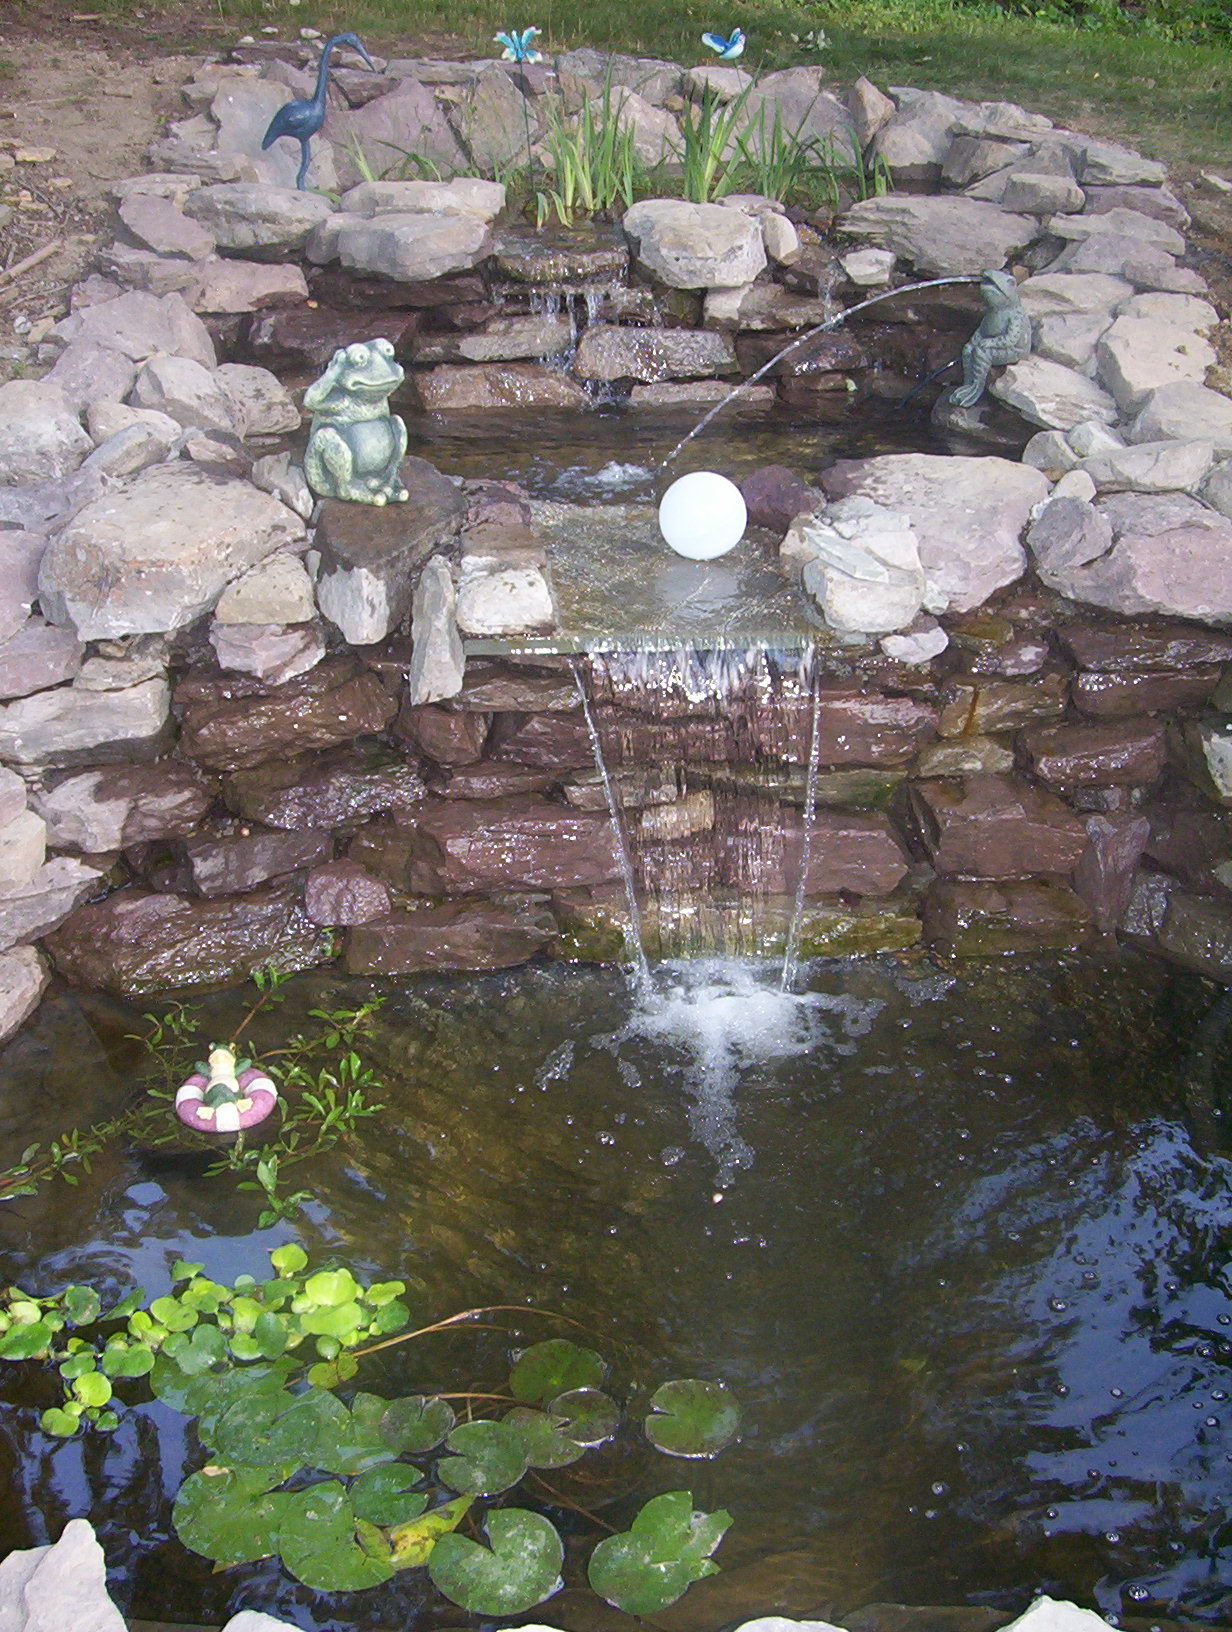 Pin landscaping plants on pinterest for Fish pond structure